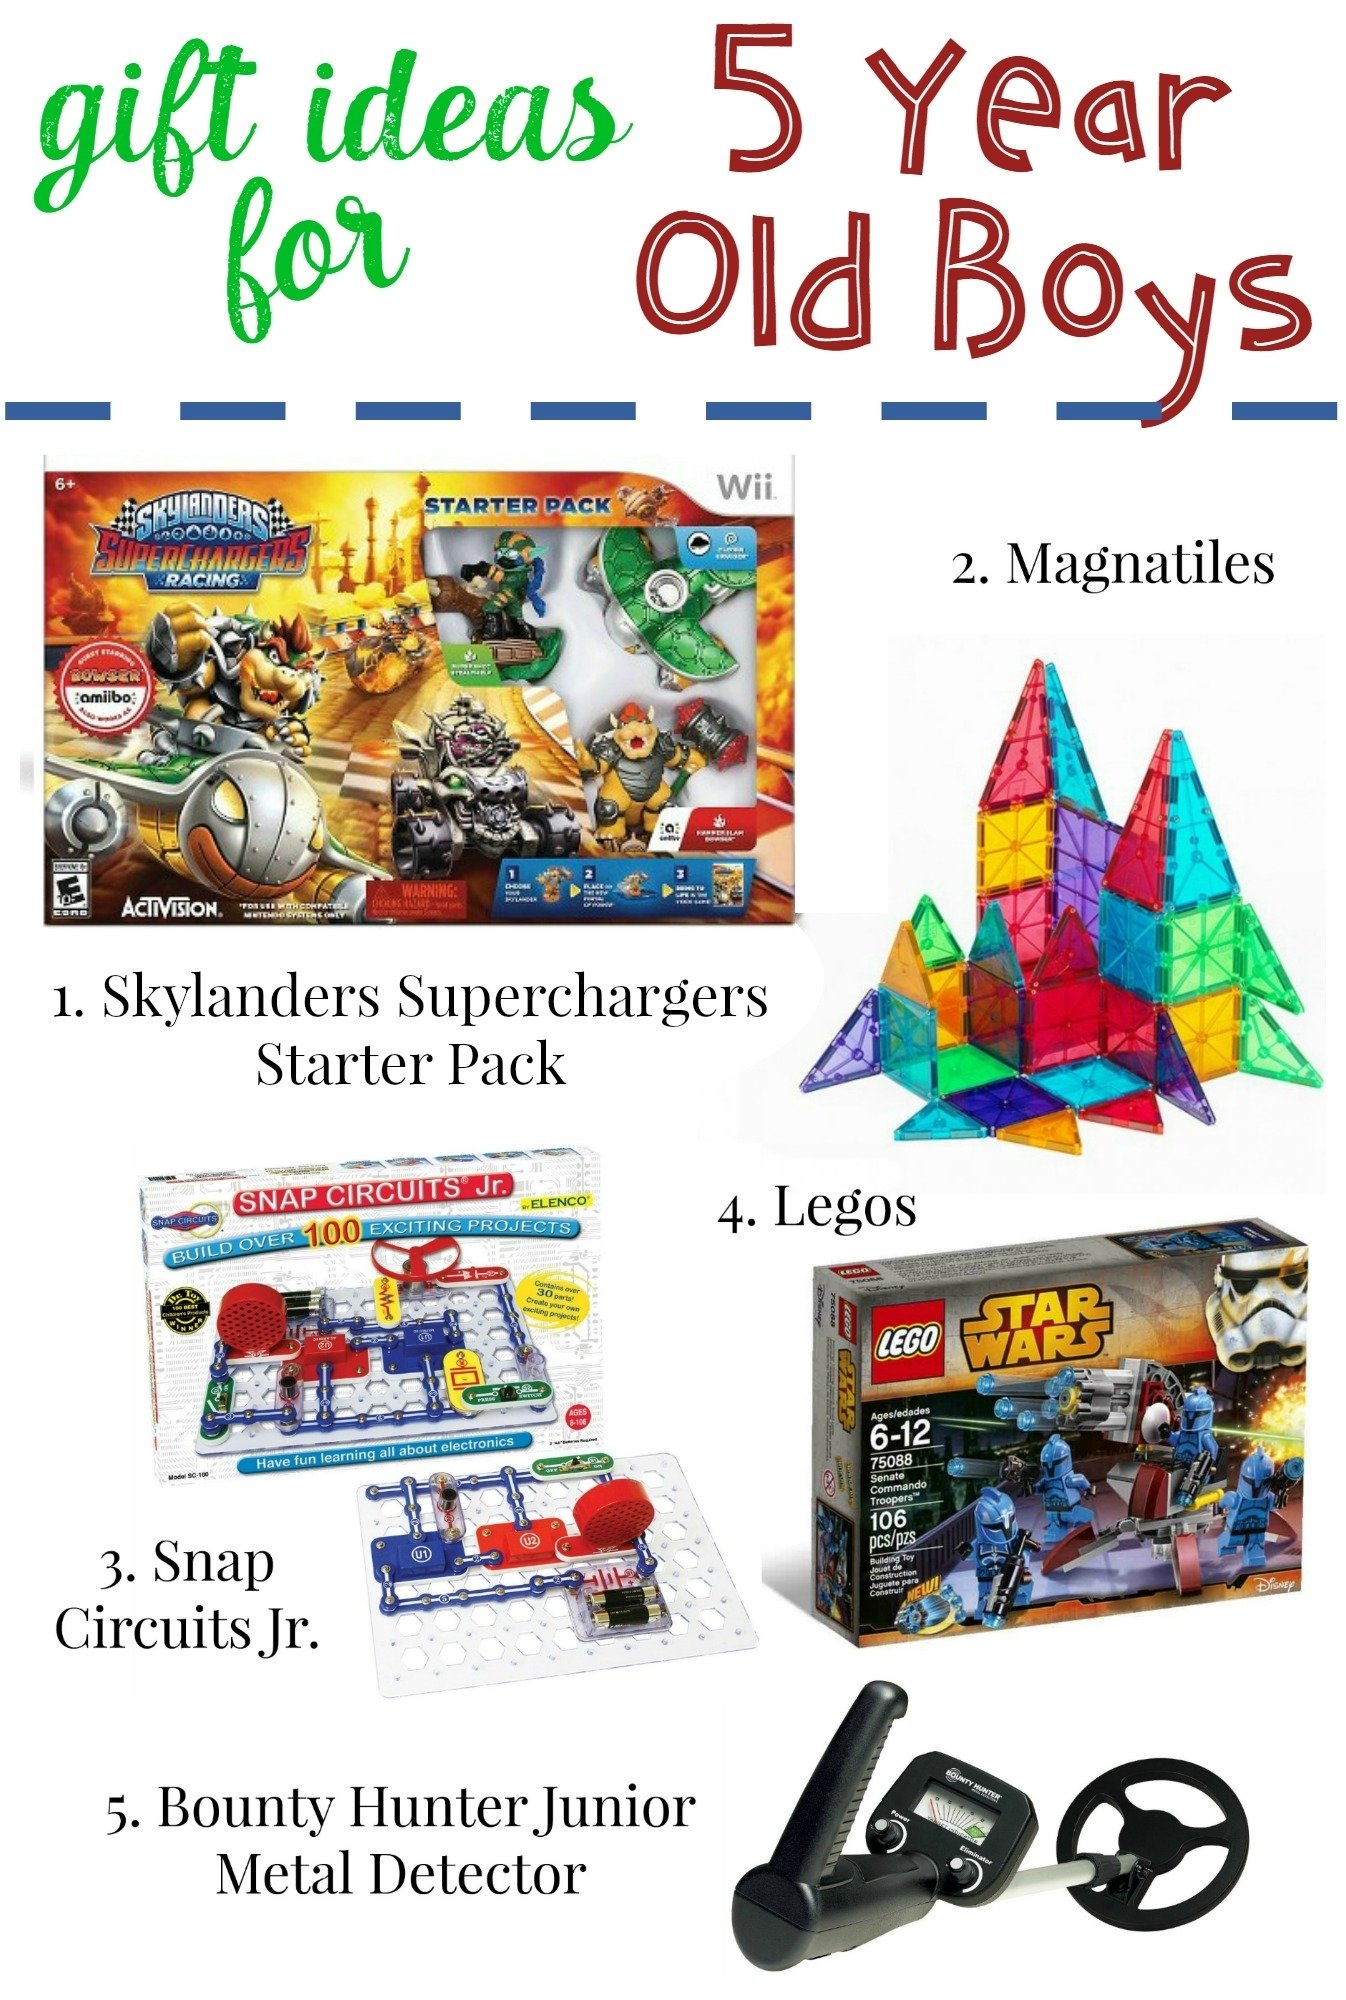 10 Trendy 4 Year Old Boy Gift Ideas gifts for 5 year old boys 5 2020